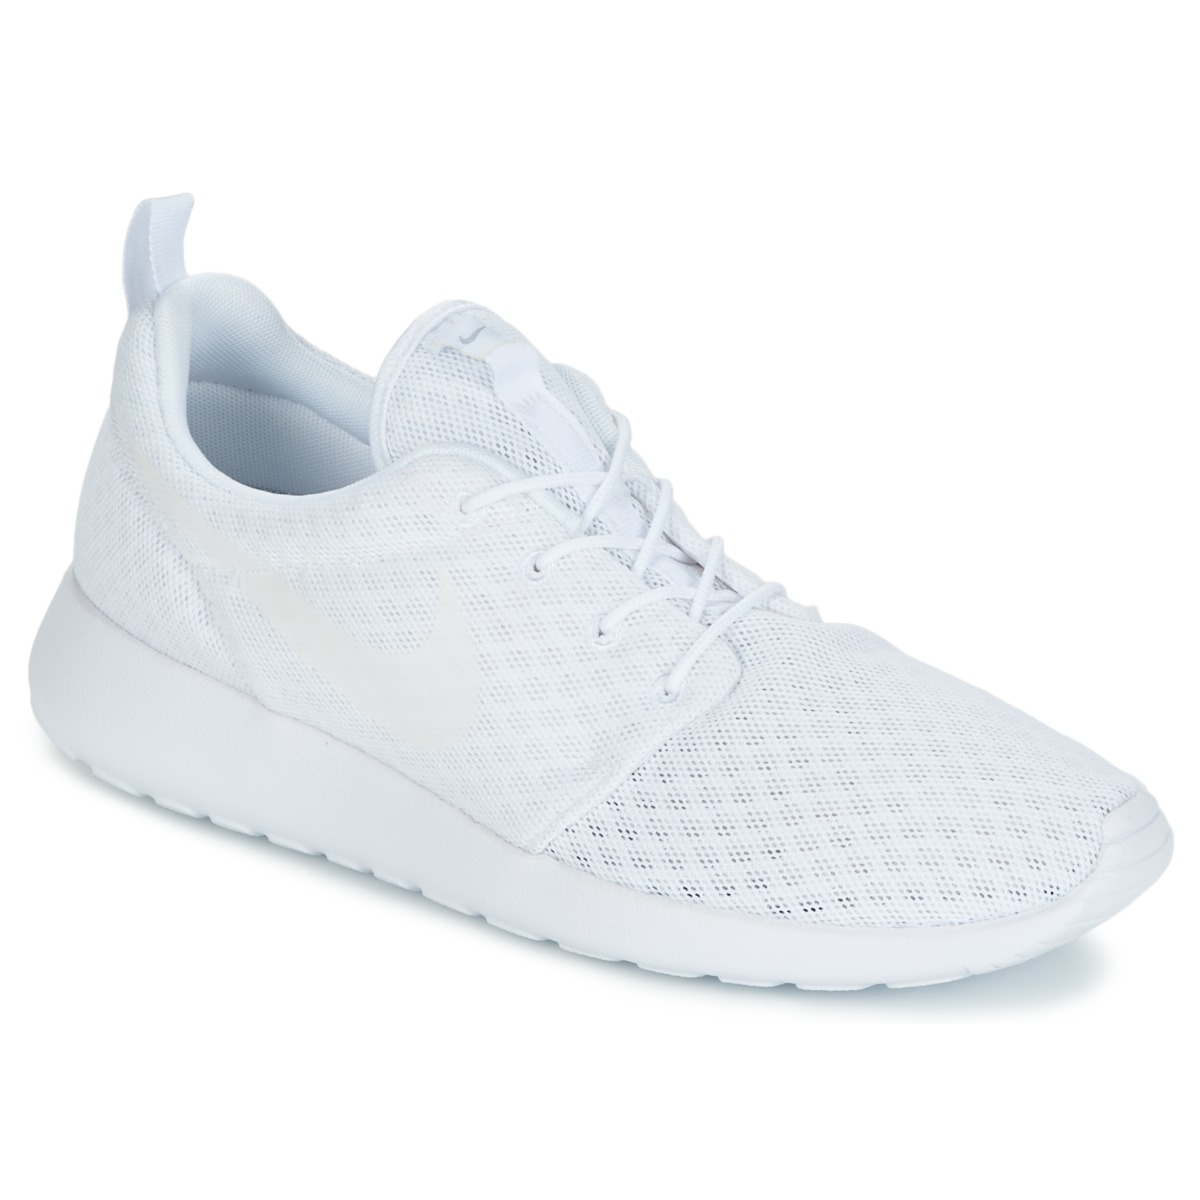 new product c898b c2247 nike roshe run pattern femme peach blanc uz119